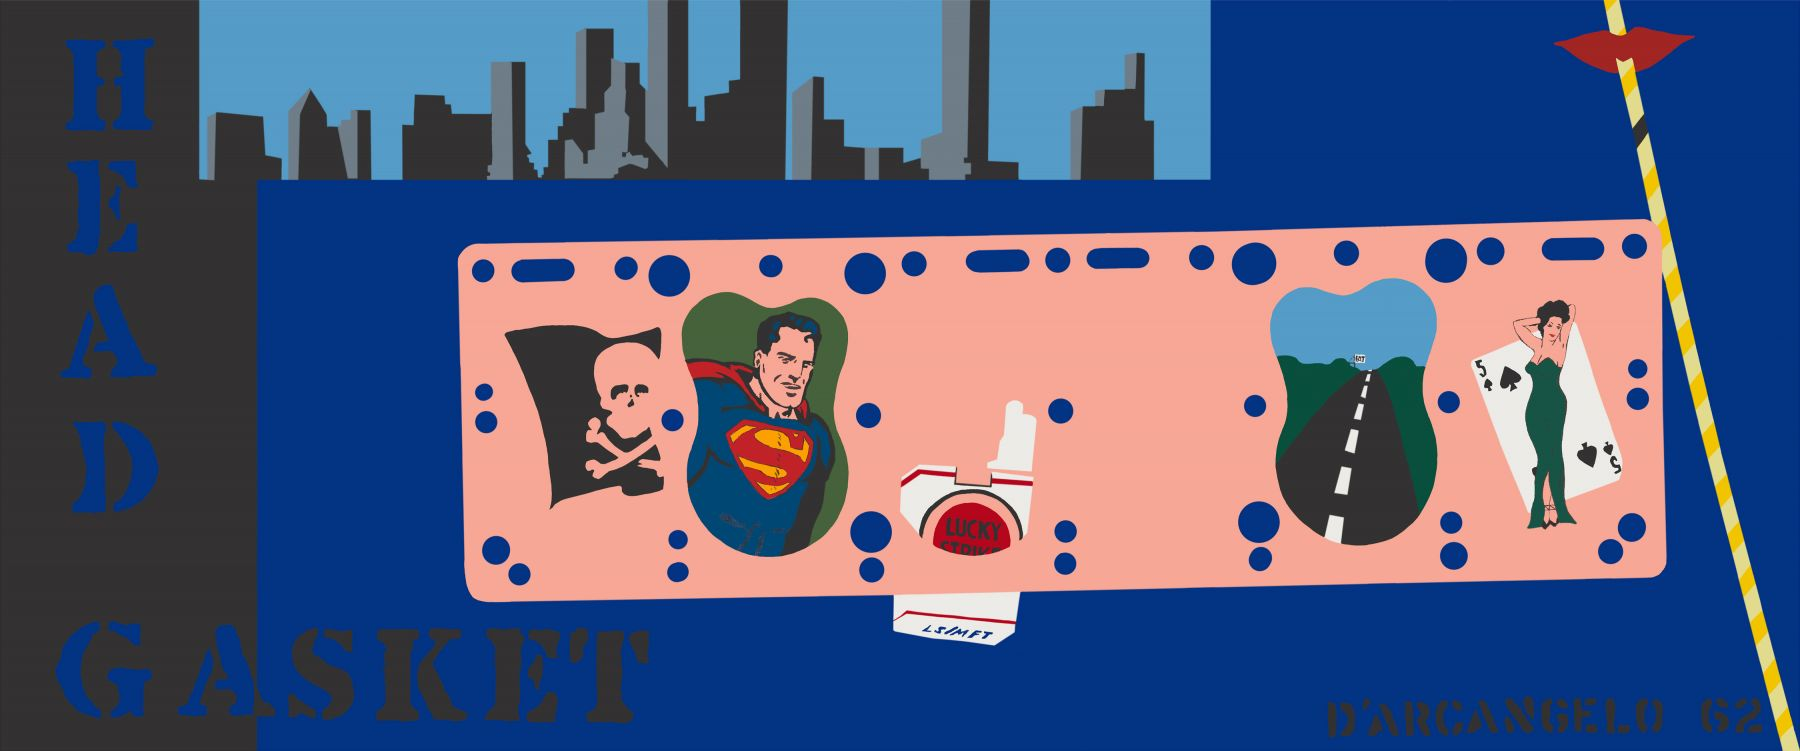 "Blue and pink abstracted painting of cityscape, with image of cigarettes, skull and cross bones, superman, with text ""Head Gasket' on Left of canvas"